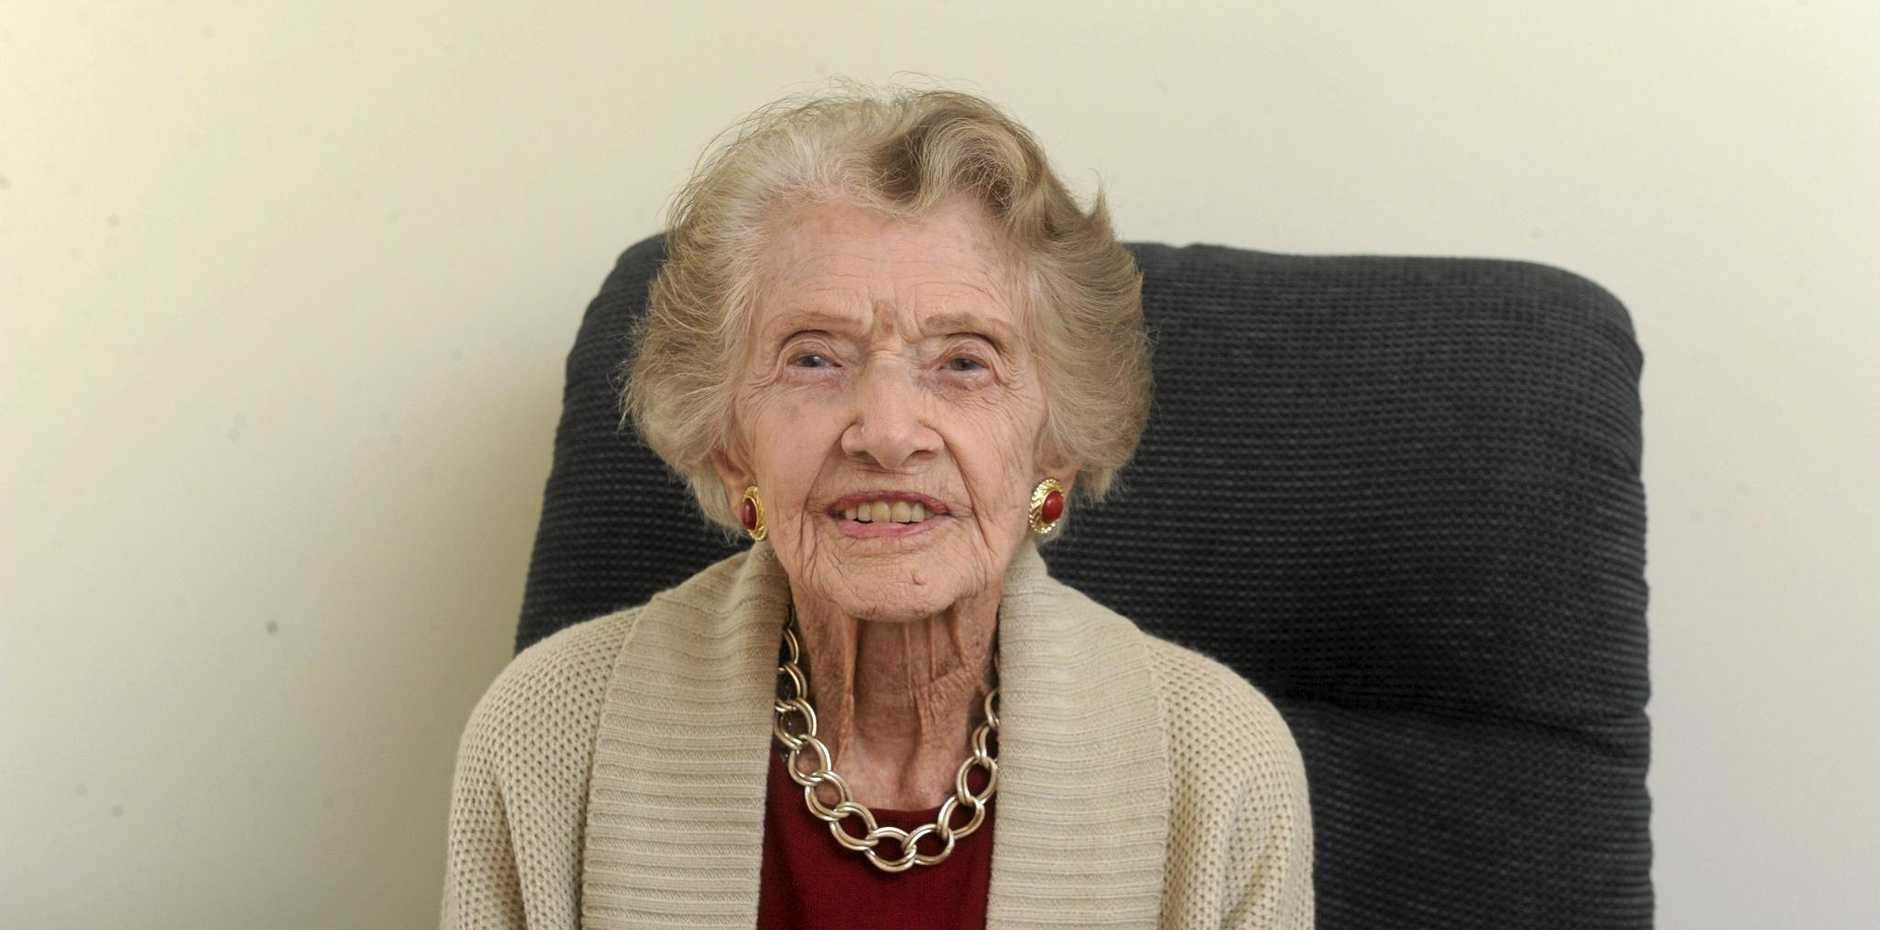 Winifred, or Win, Jefferies is celebrating more than a century of life in the Clarence Valley for her 104th birthday on Wednesday, August 24.